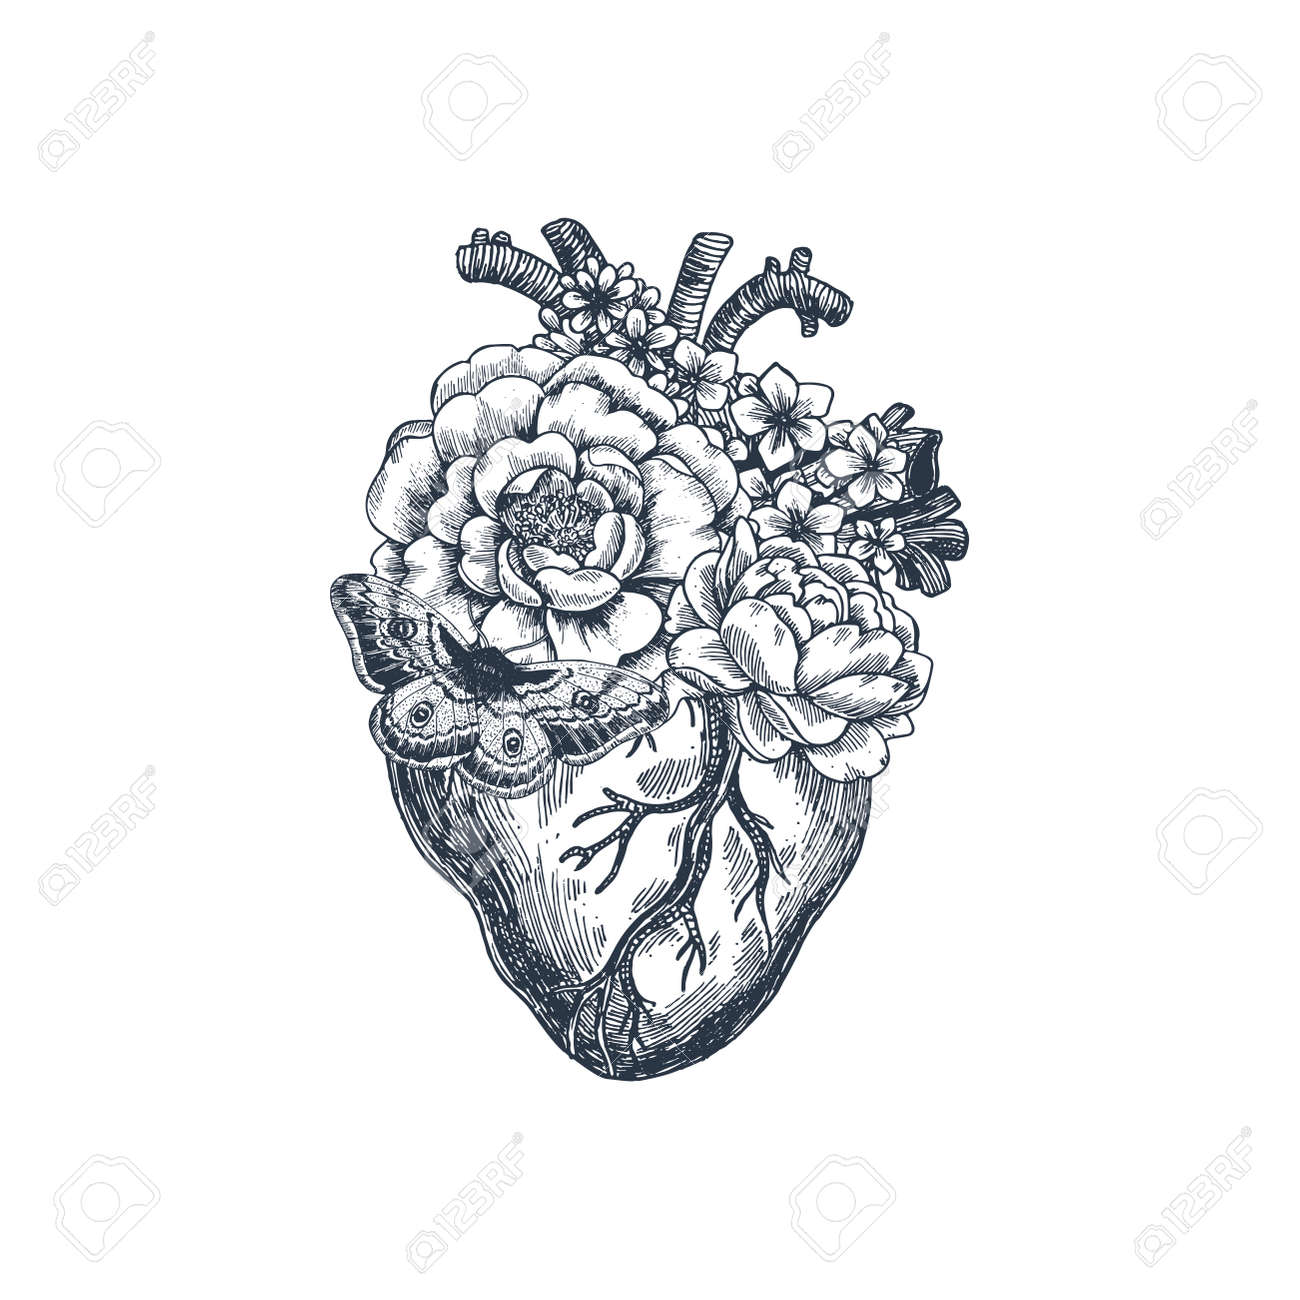 Tattoo Anatomy Vintage Illustration Floral Anatomical Heart